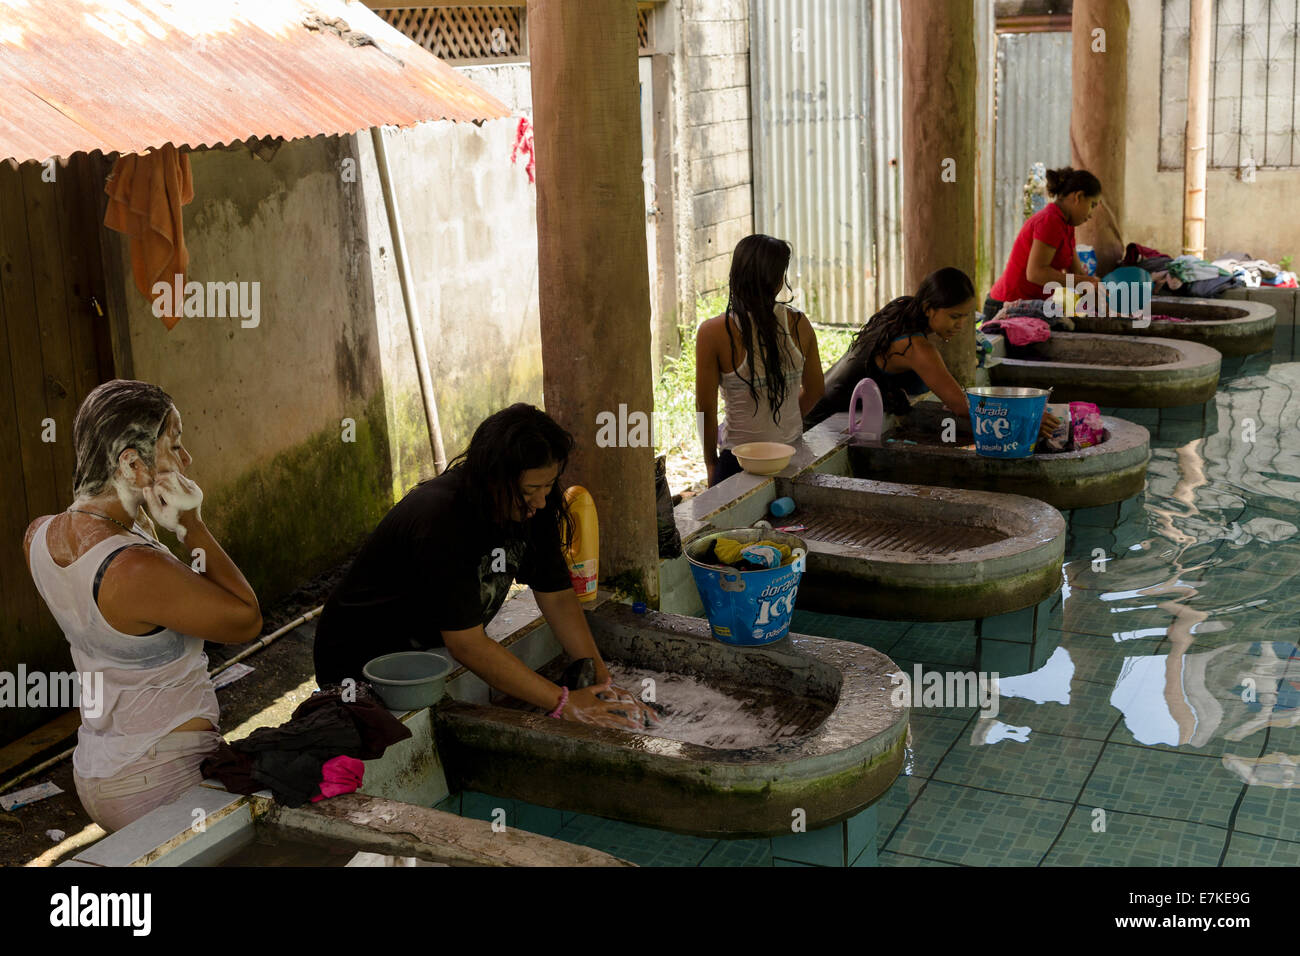 Women washing clothes in a laundry, Livingston, Guatemala - Stock Image